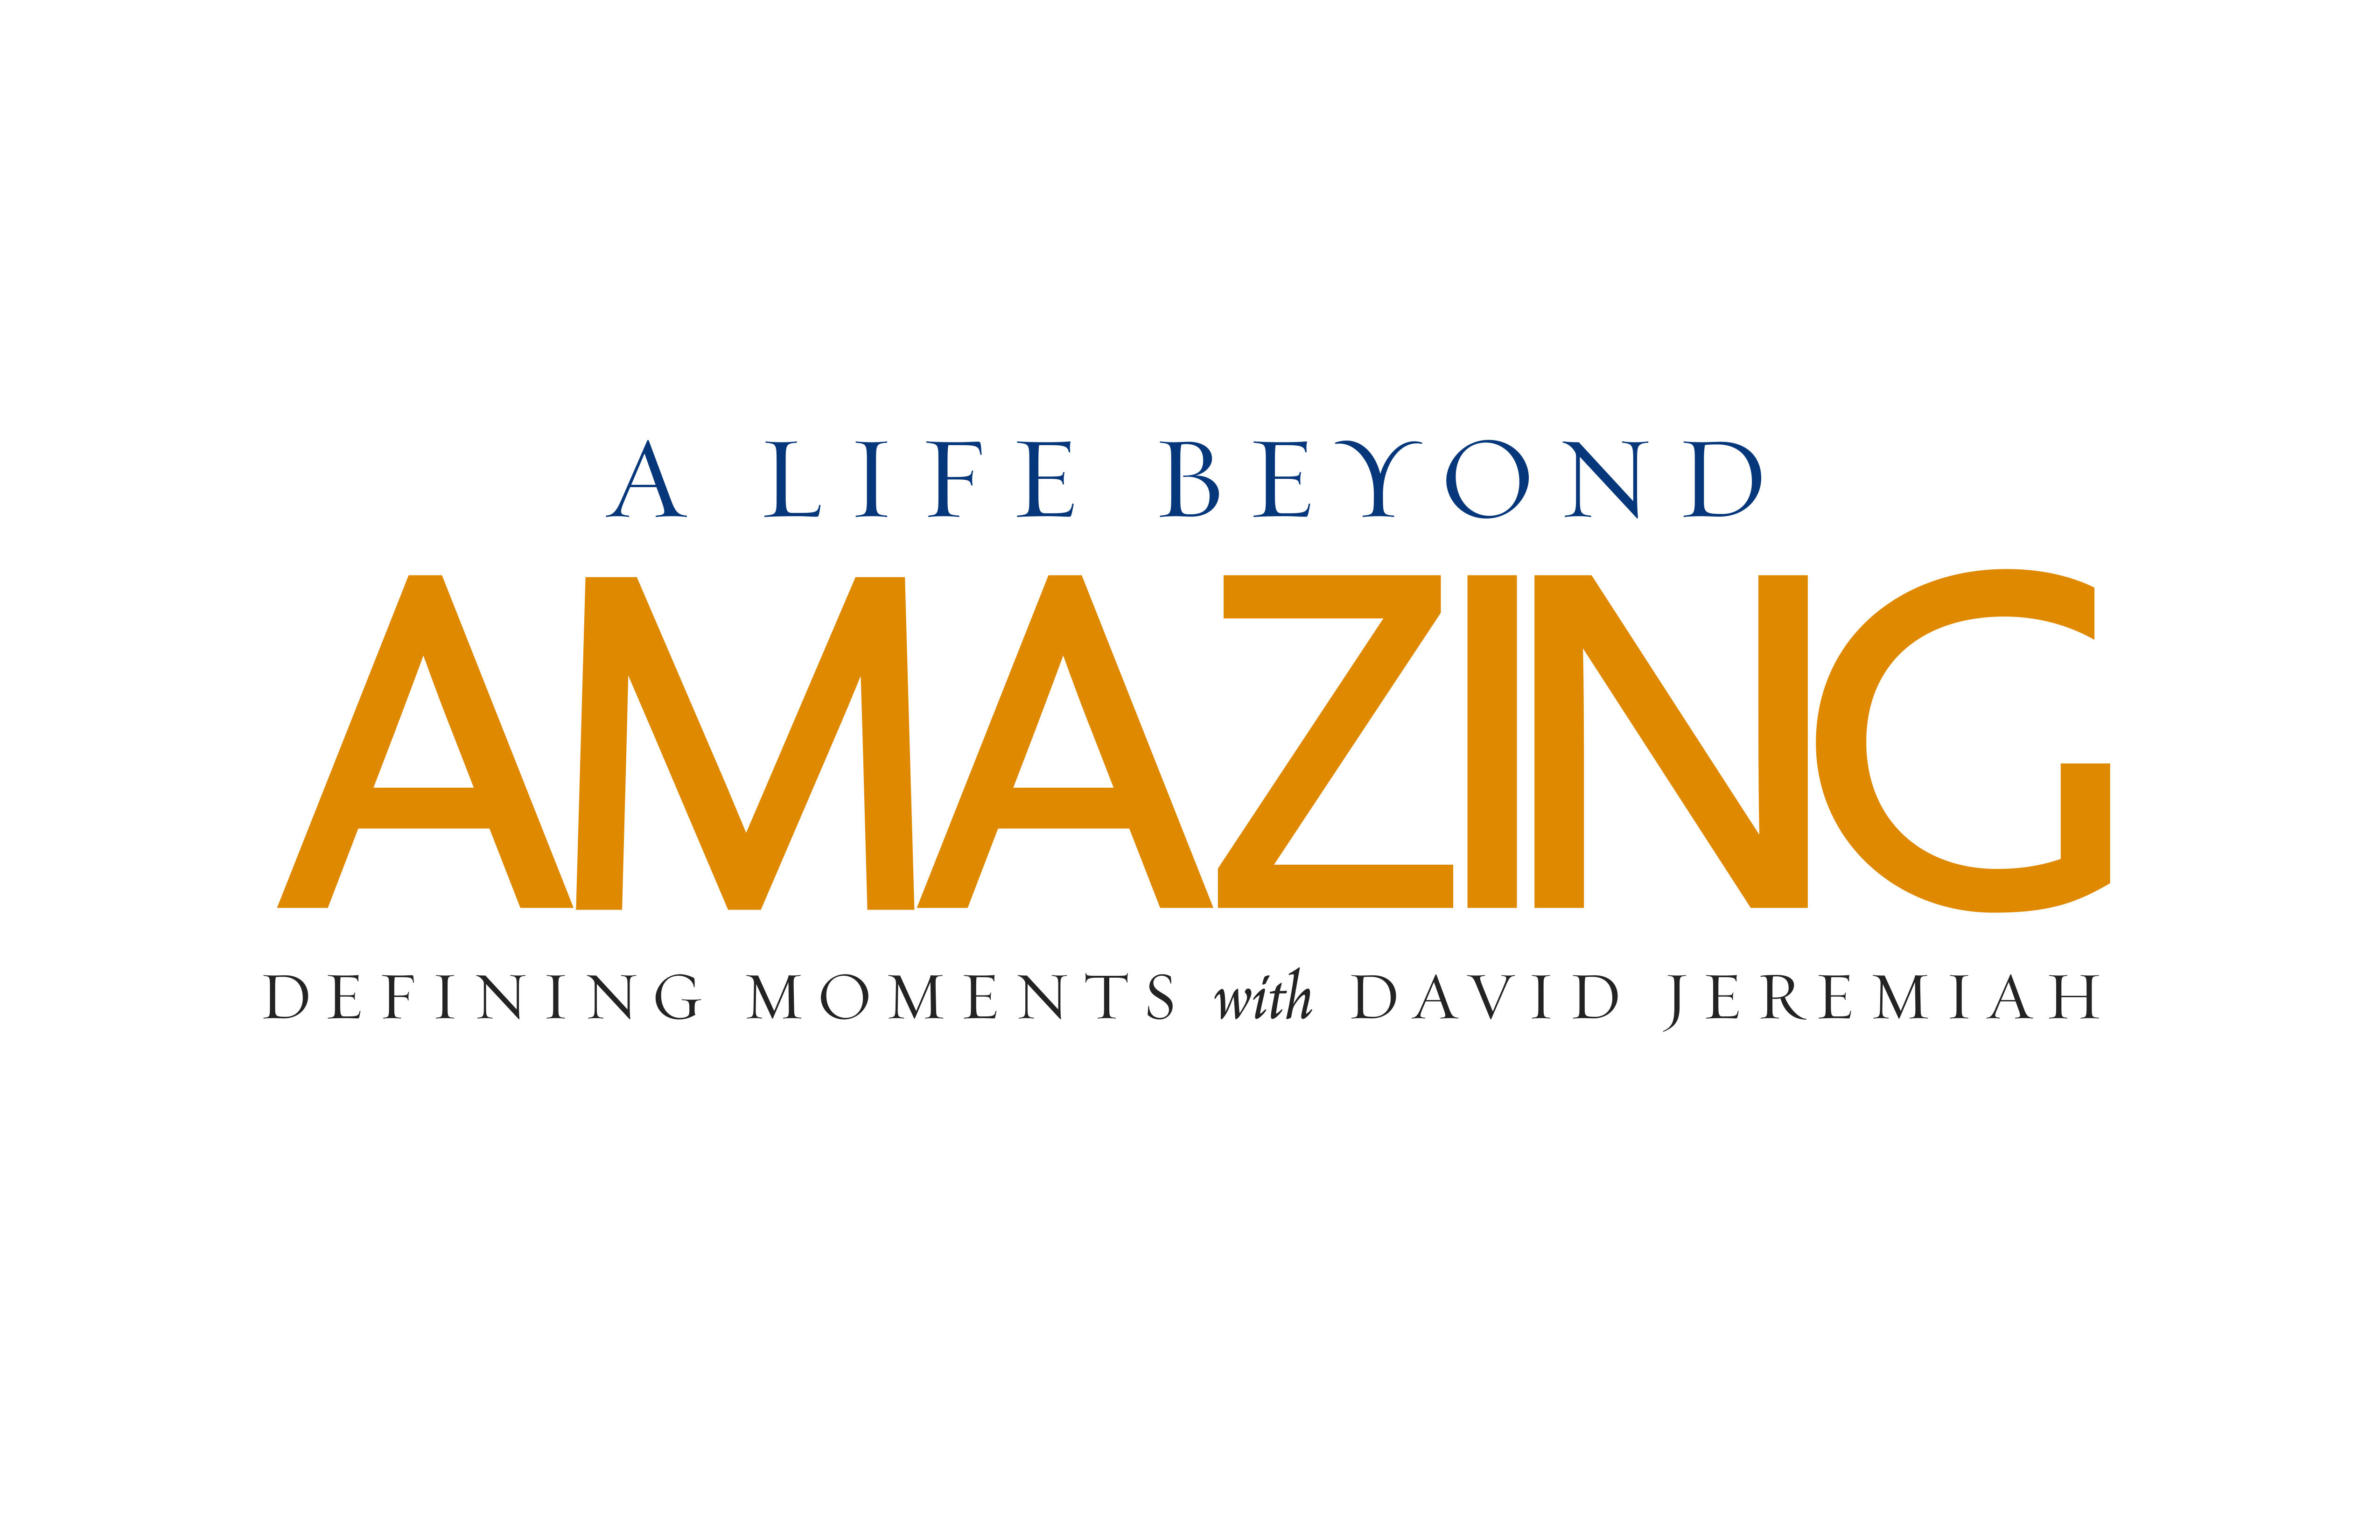 A Life Beyond Amazing: Defining Moments with David Jeremiah